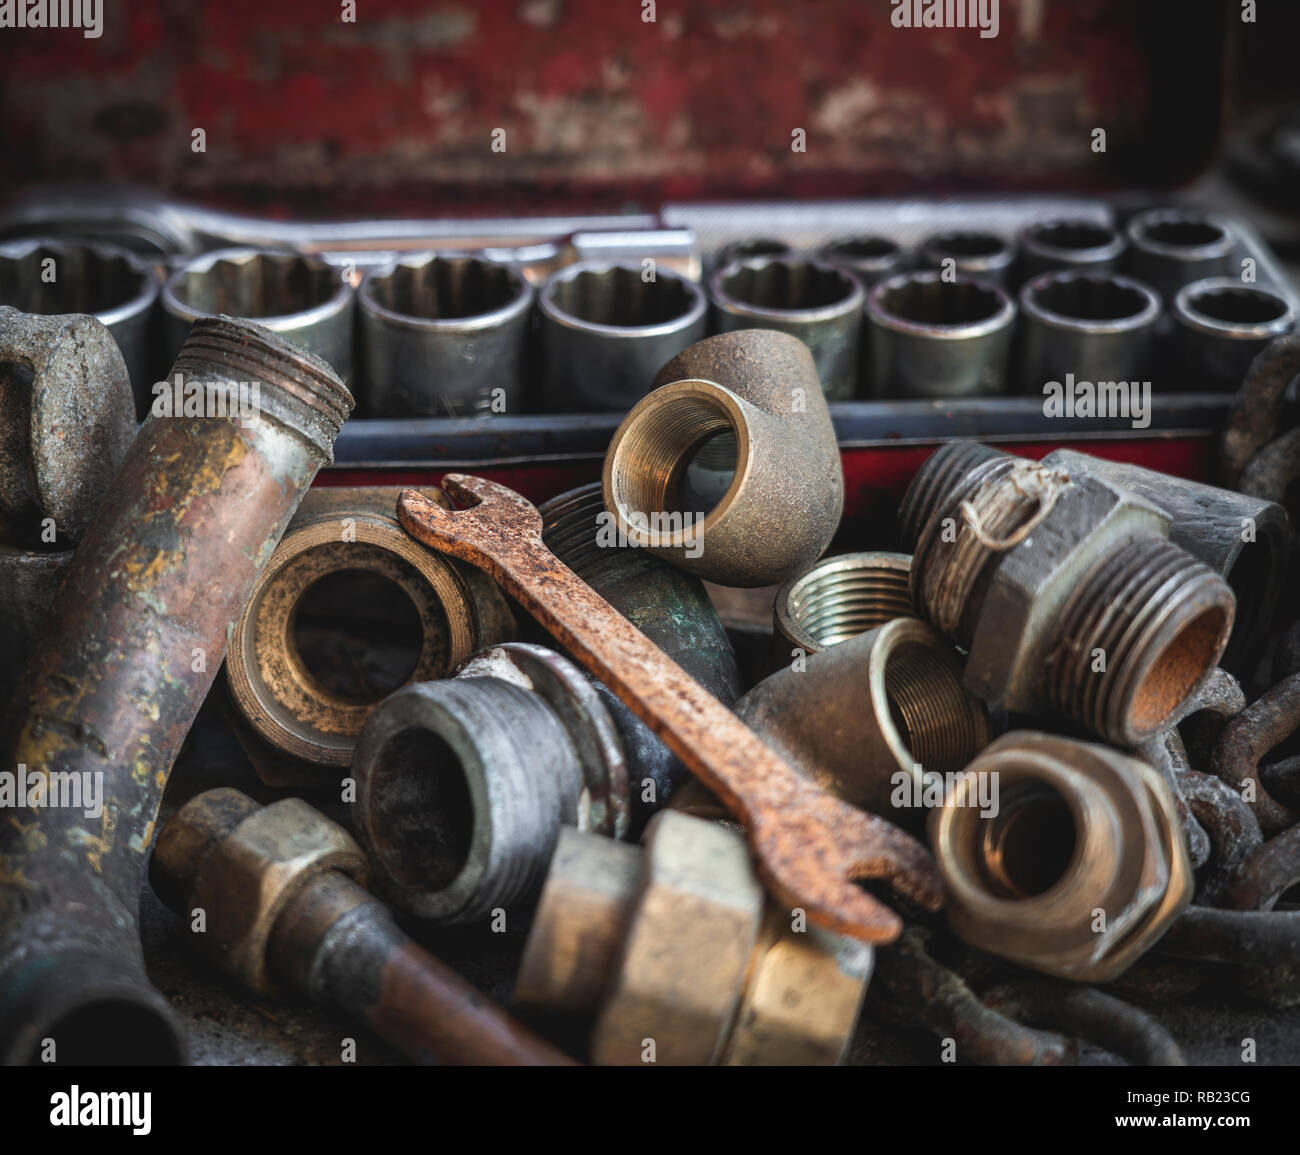 Rusty old plumber pipes with rusty wrench and toolbox. Indsutrial, repair, plumbing and vintage concepts. Stock Photo